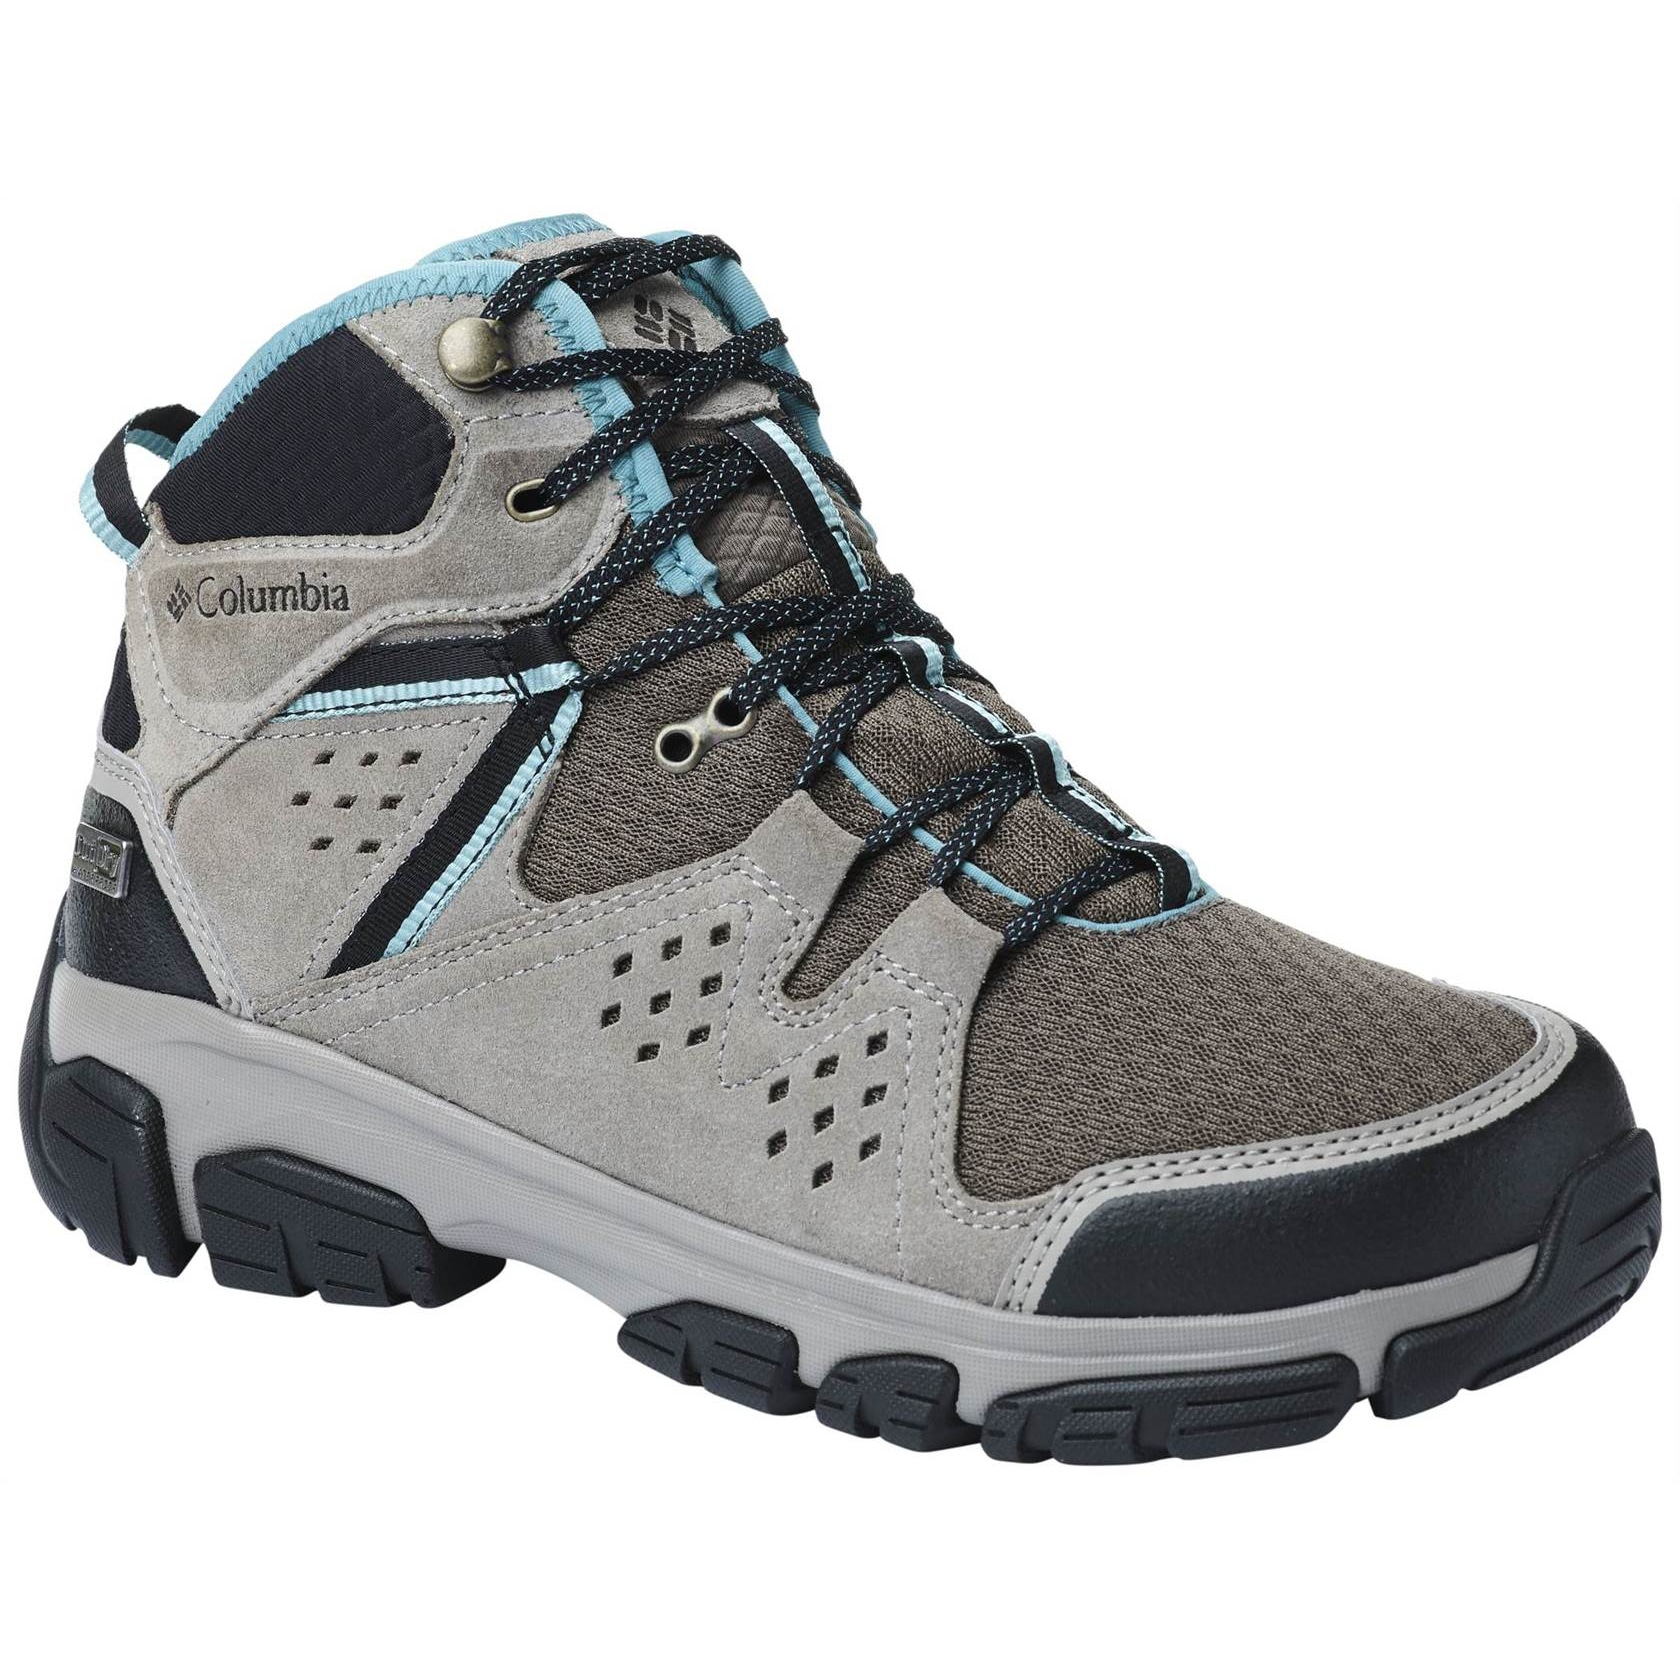 Isoterra Mid Outdry - Women's